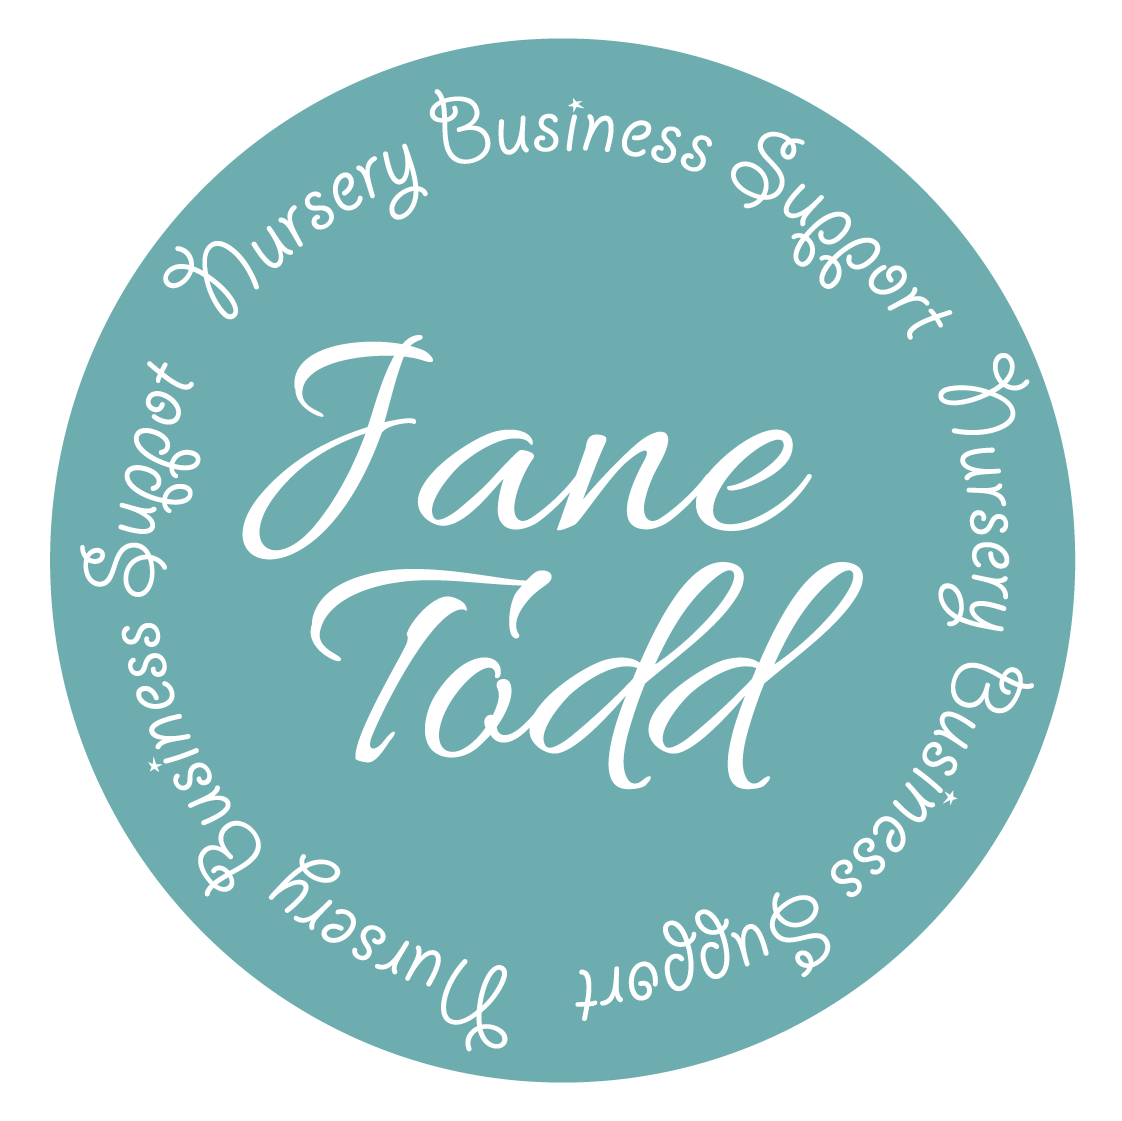 Jane Todd - Nursery Business Support